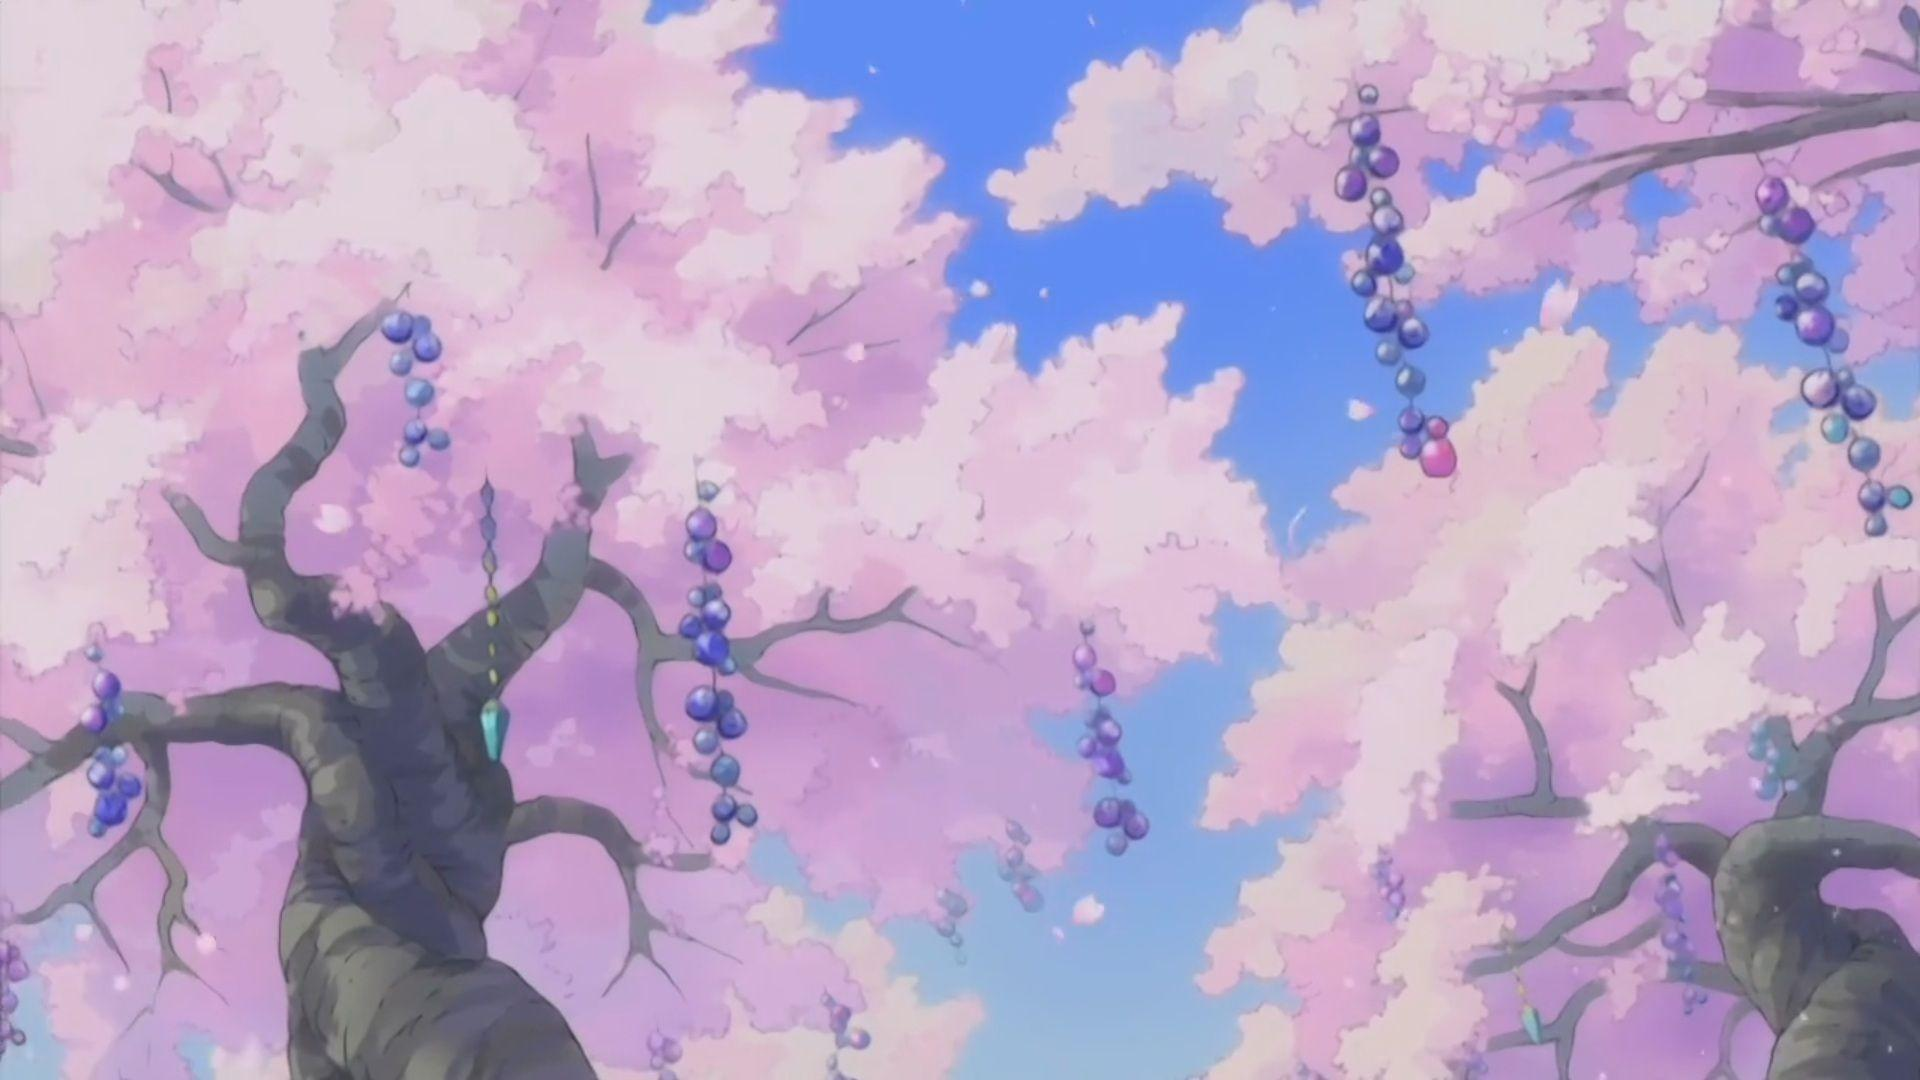 Happy Holidays Anime Girl Wallpaper 1920x1080 Anime Scenery Wallpapers Wallpaper Cave